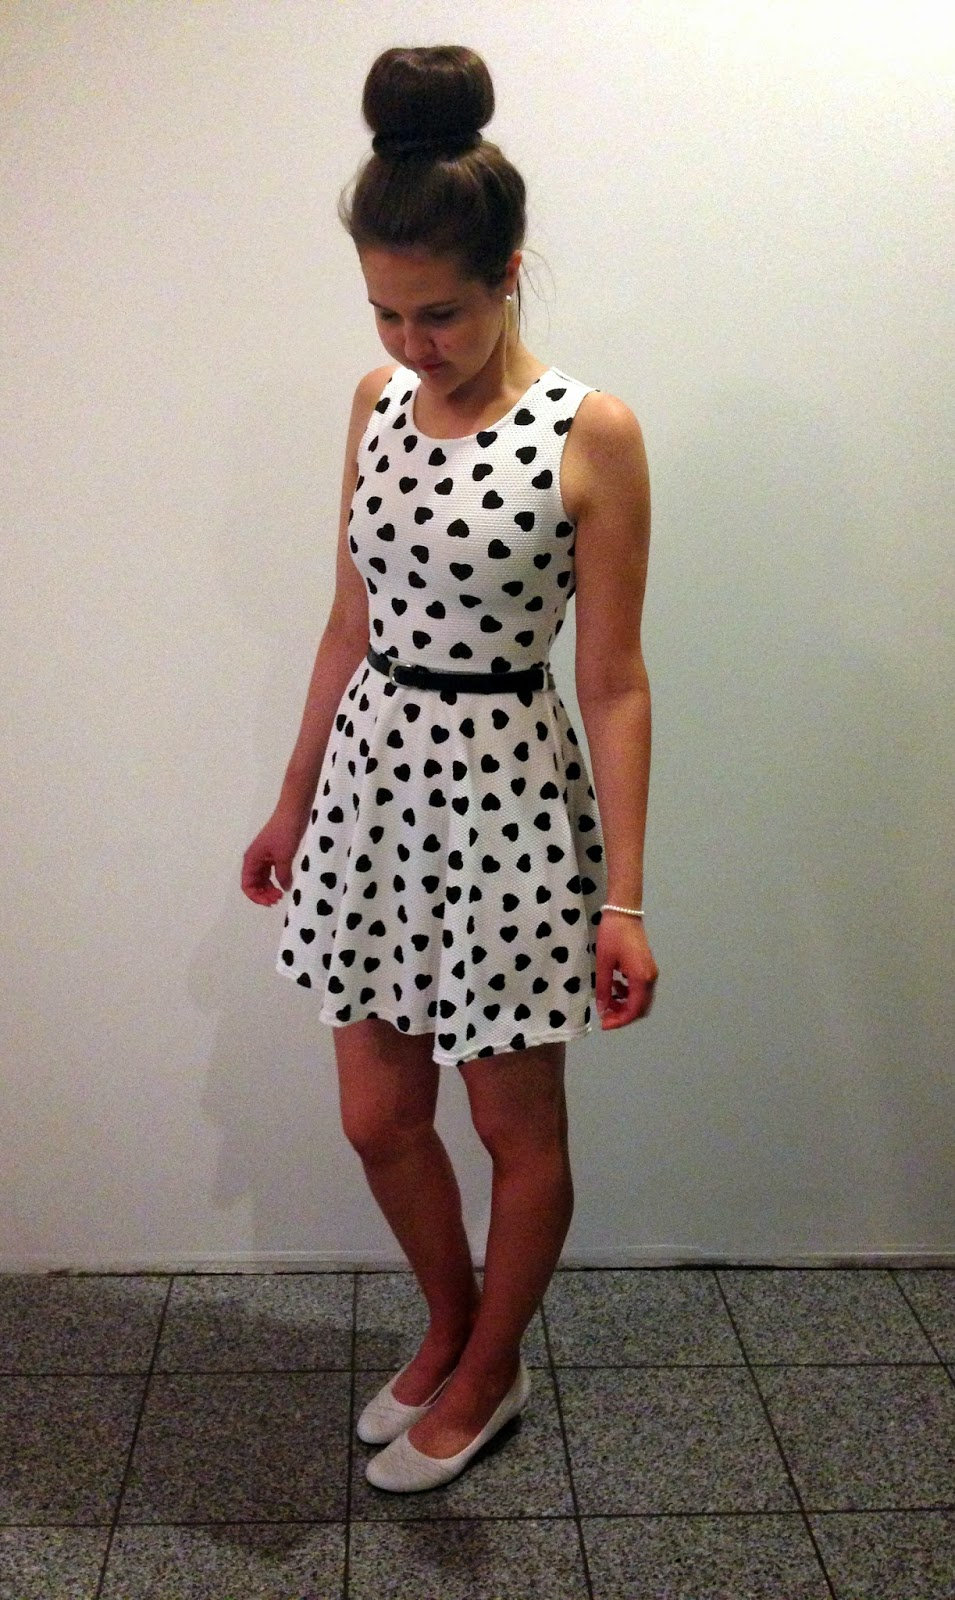 Me and my sweet 16 dress. Black and white dress. Dress with hearts